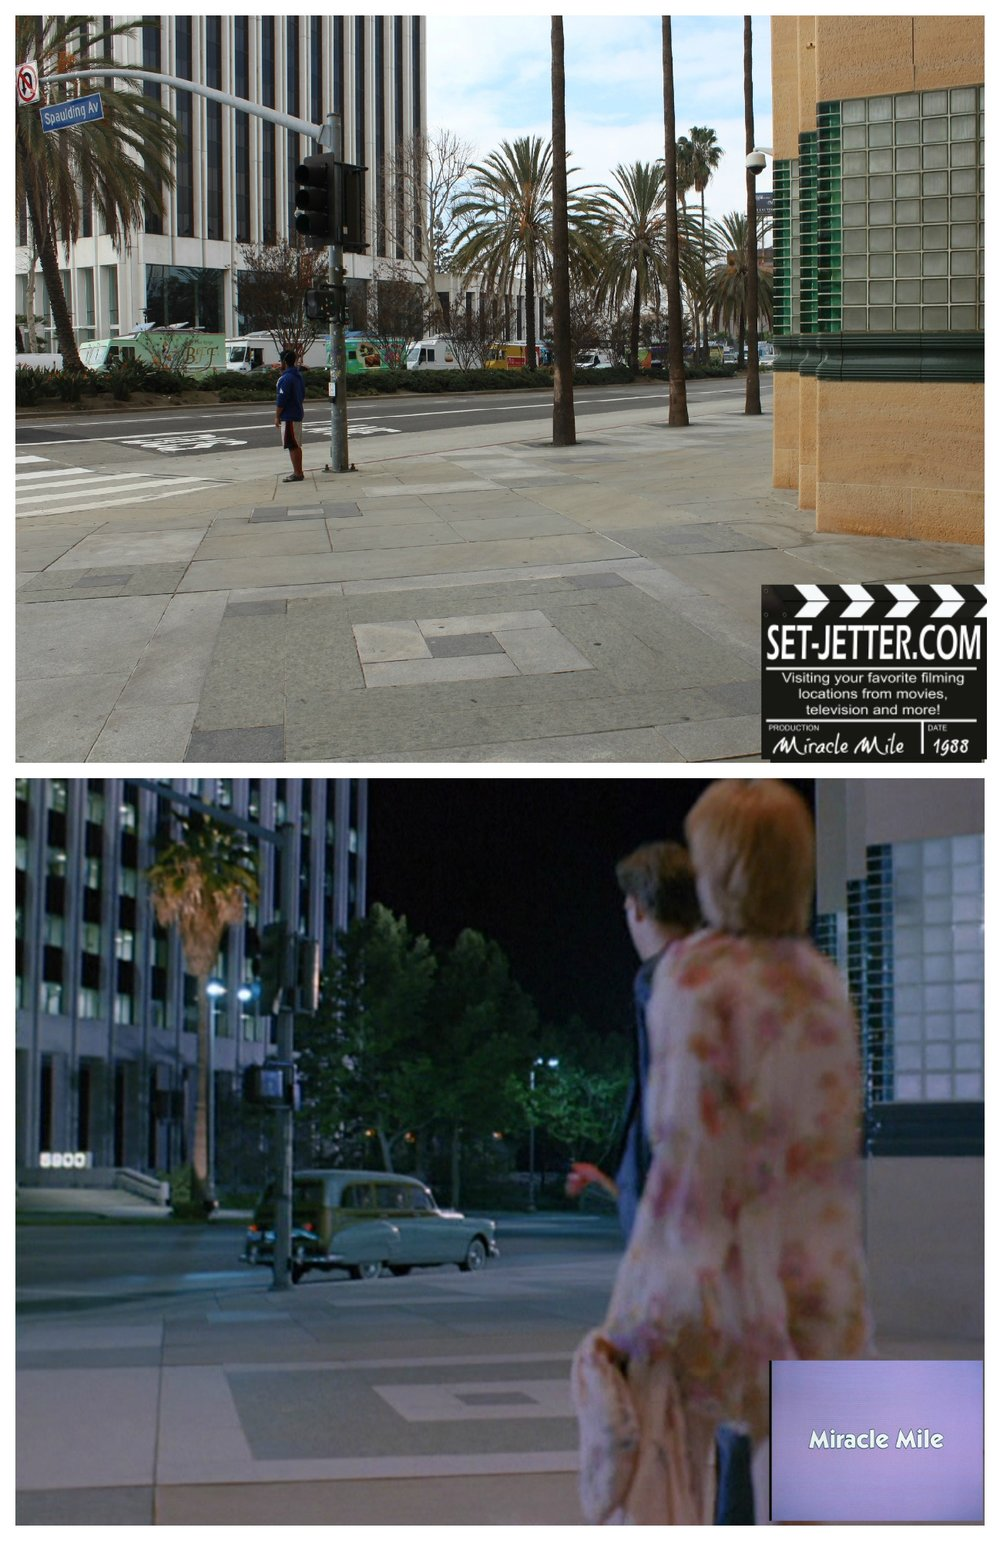 Miracle Mile comparison 29.jpg